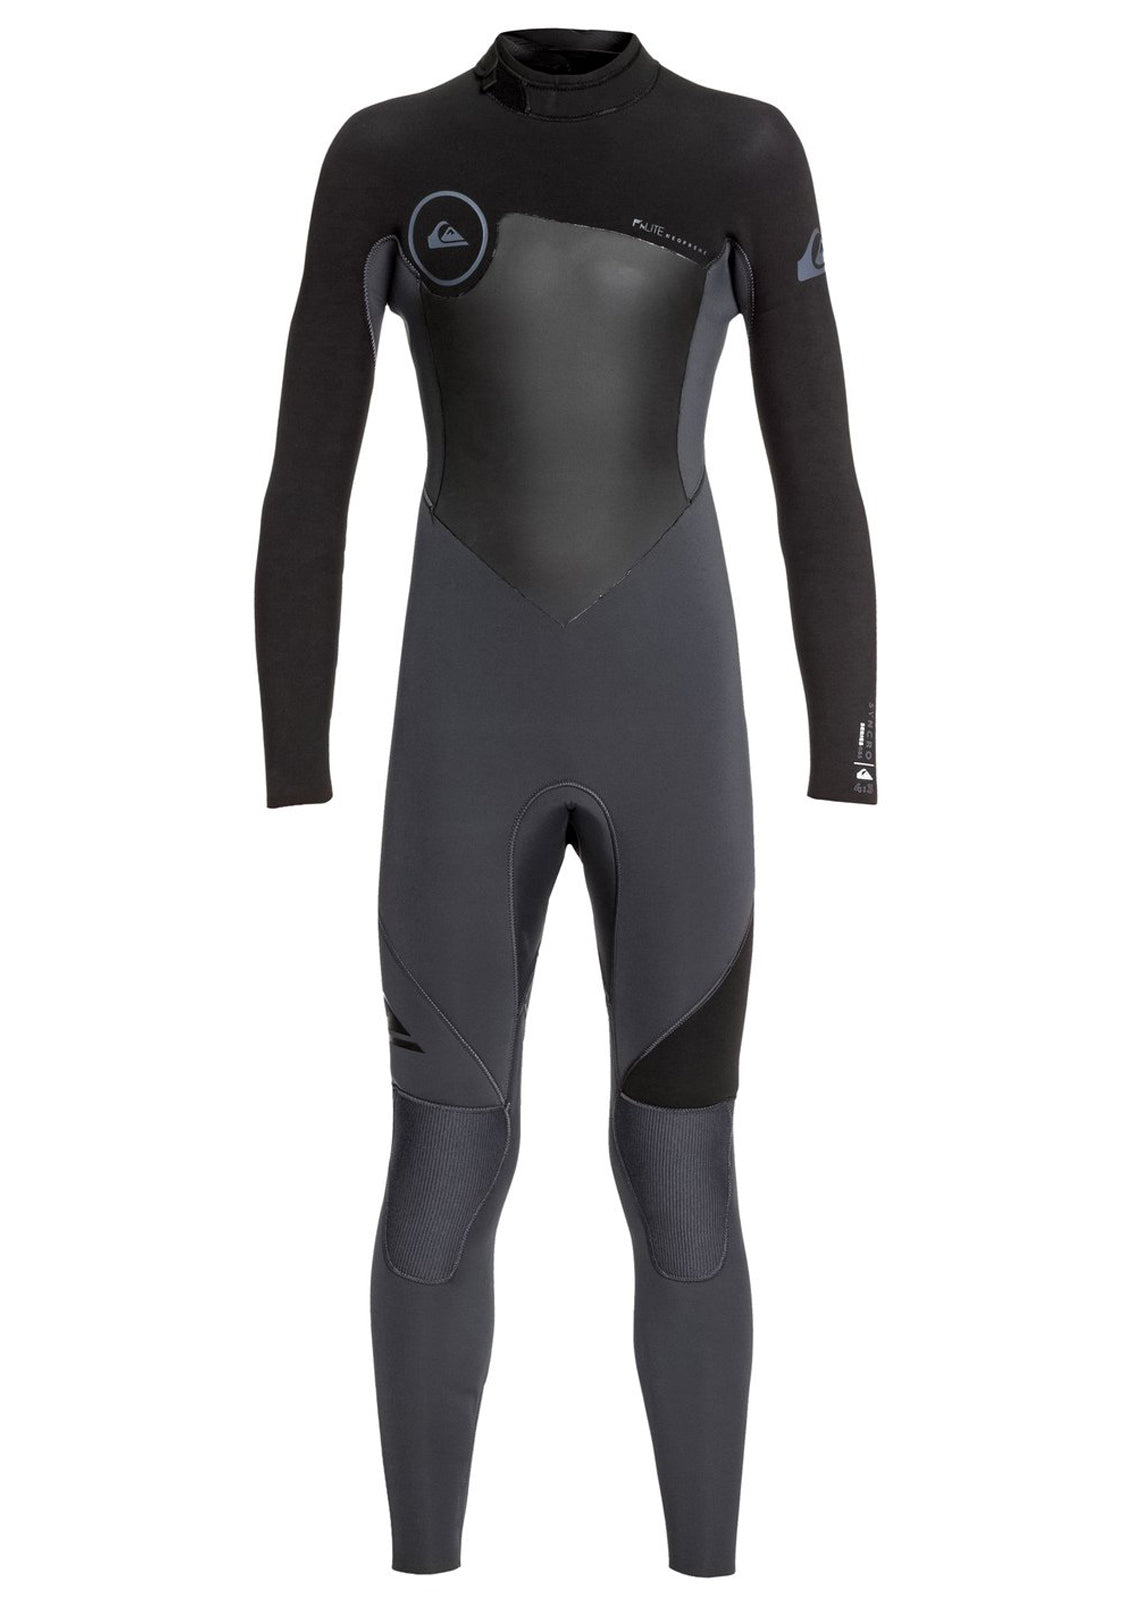 Quiksilver Boys 4/3 Syncro Series Back Zip GBS Wetsuit